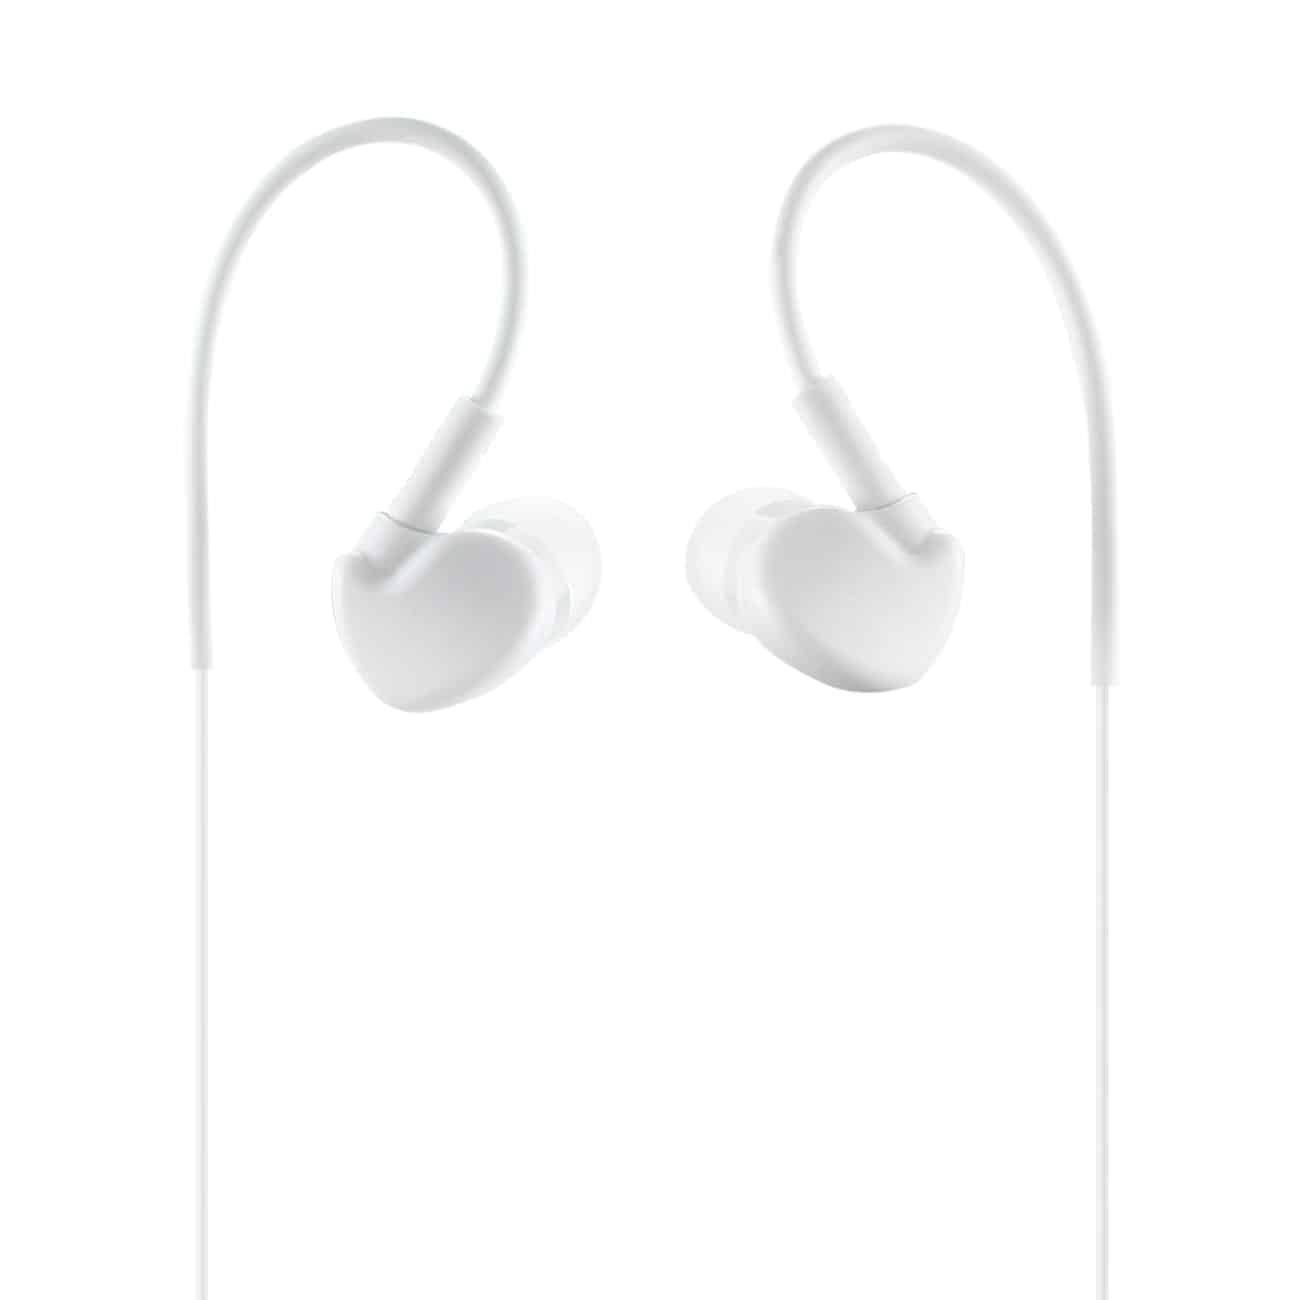 UNIVERSAL SPORT STEREO EARPHONES W. TANGLE FREE NOODLE CABLE AND MIC IN WHITE